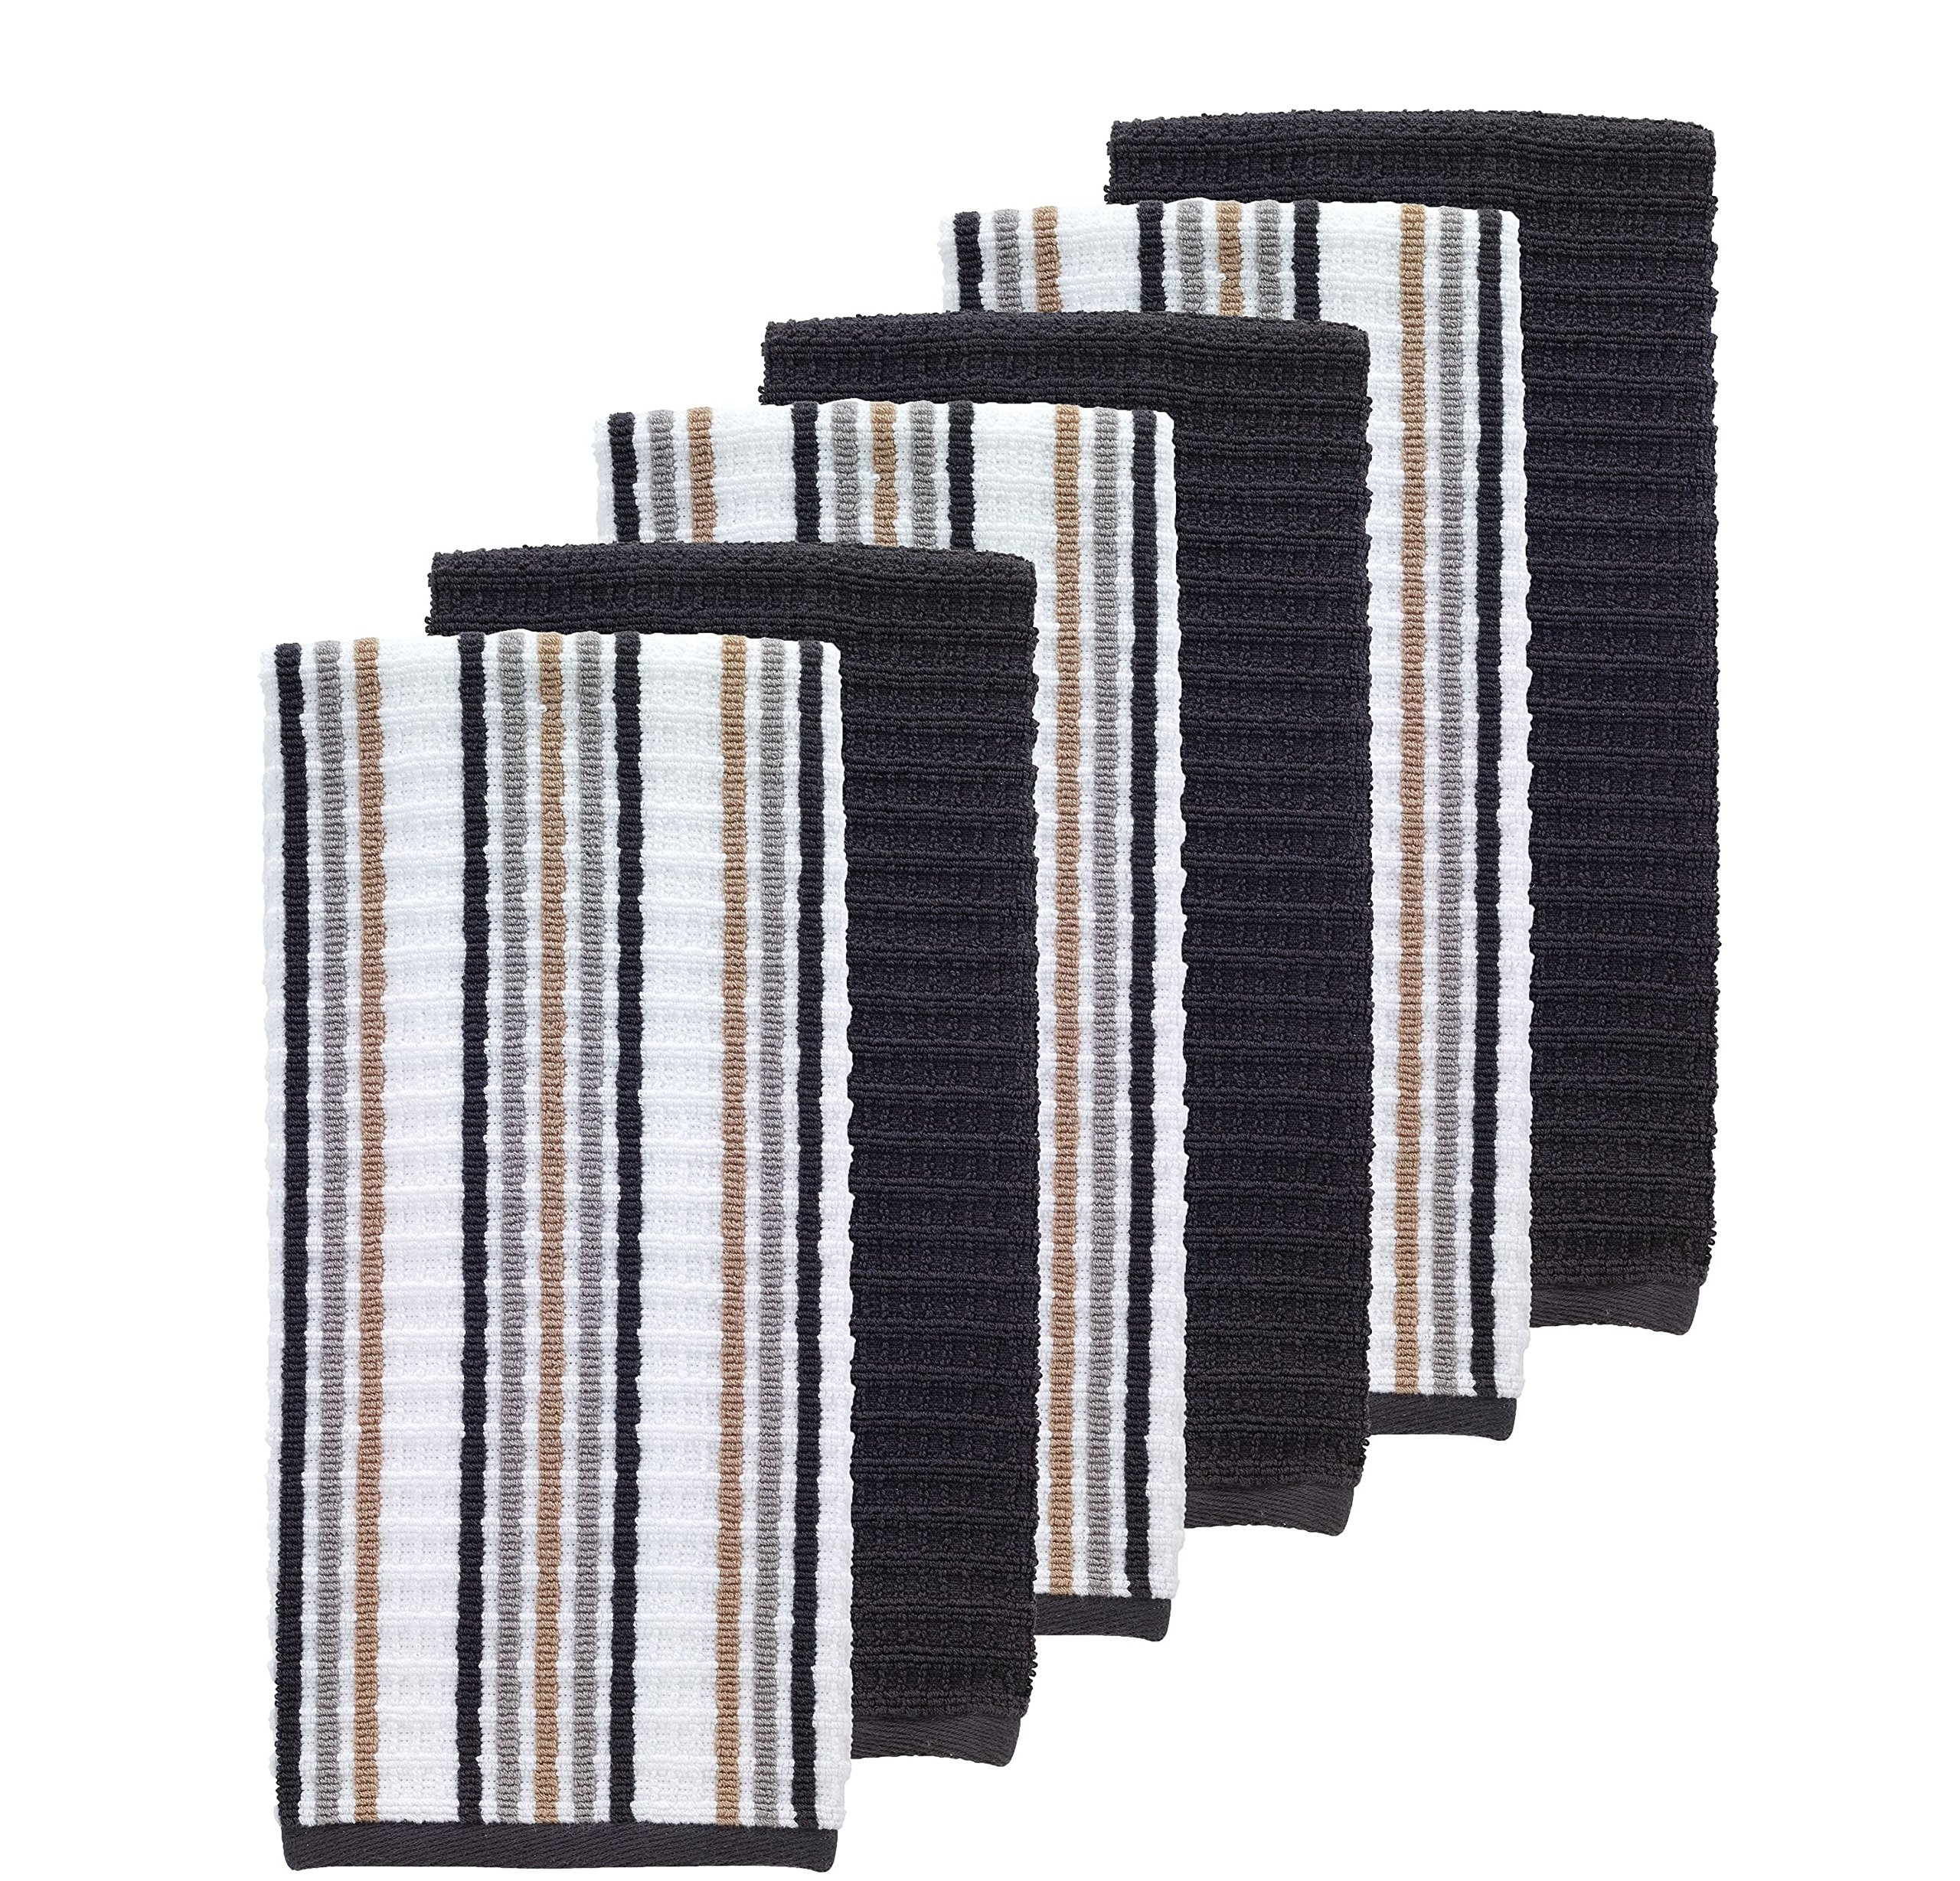 Set Of 6 Oversized Charcoal Black Striped Theme Kitchen Dish Towel Set, Sleek Trendy Classic Solid Color Linen Pattern Cloths Highly Absorbent Soft Plush Vibrant Vertical Stripes Classic, Cotton Terry by N2